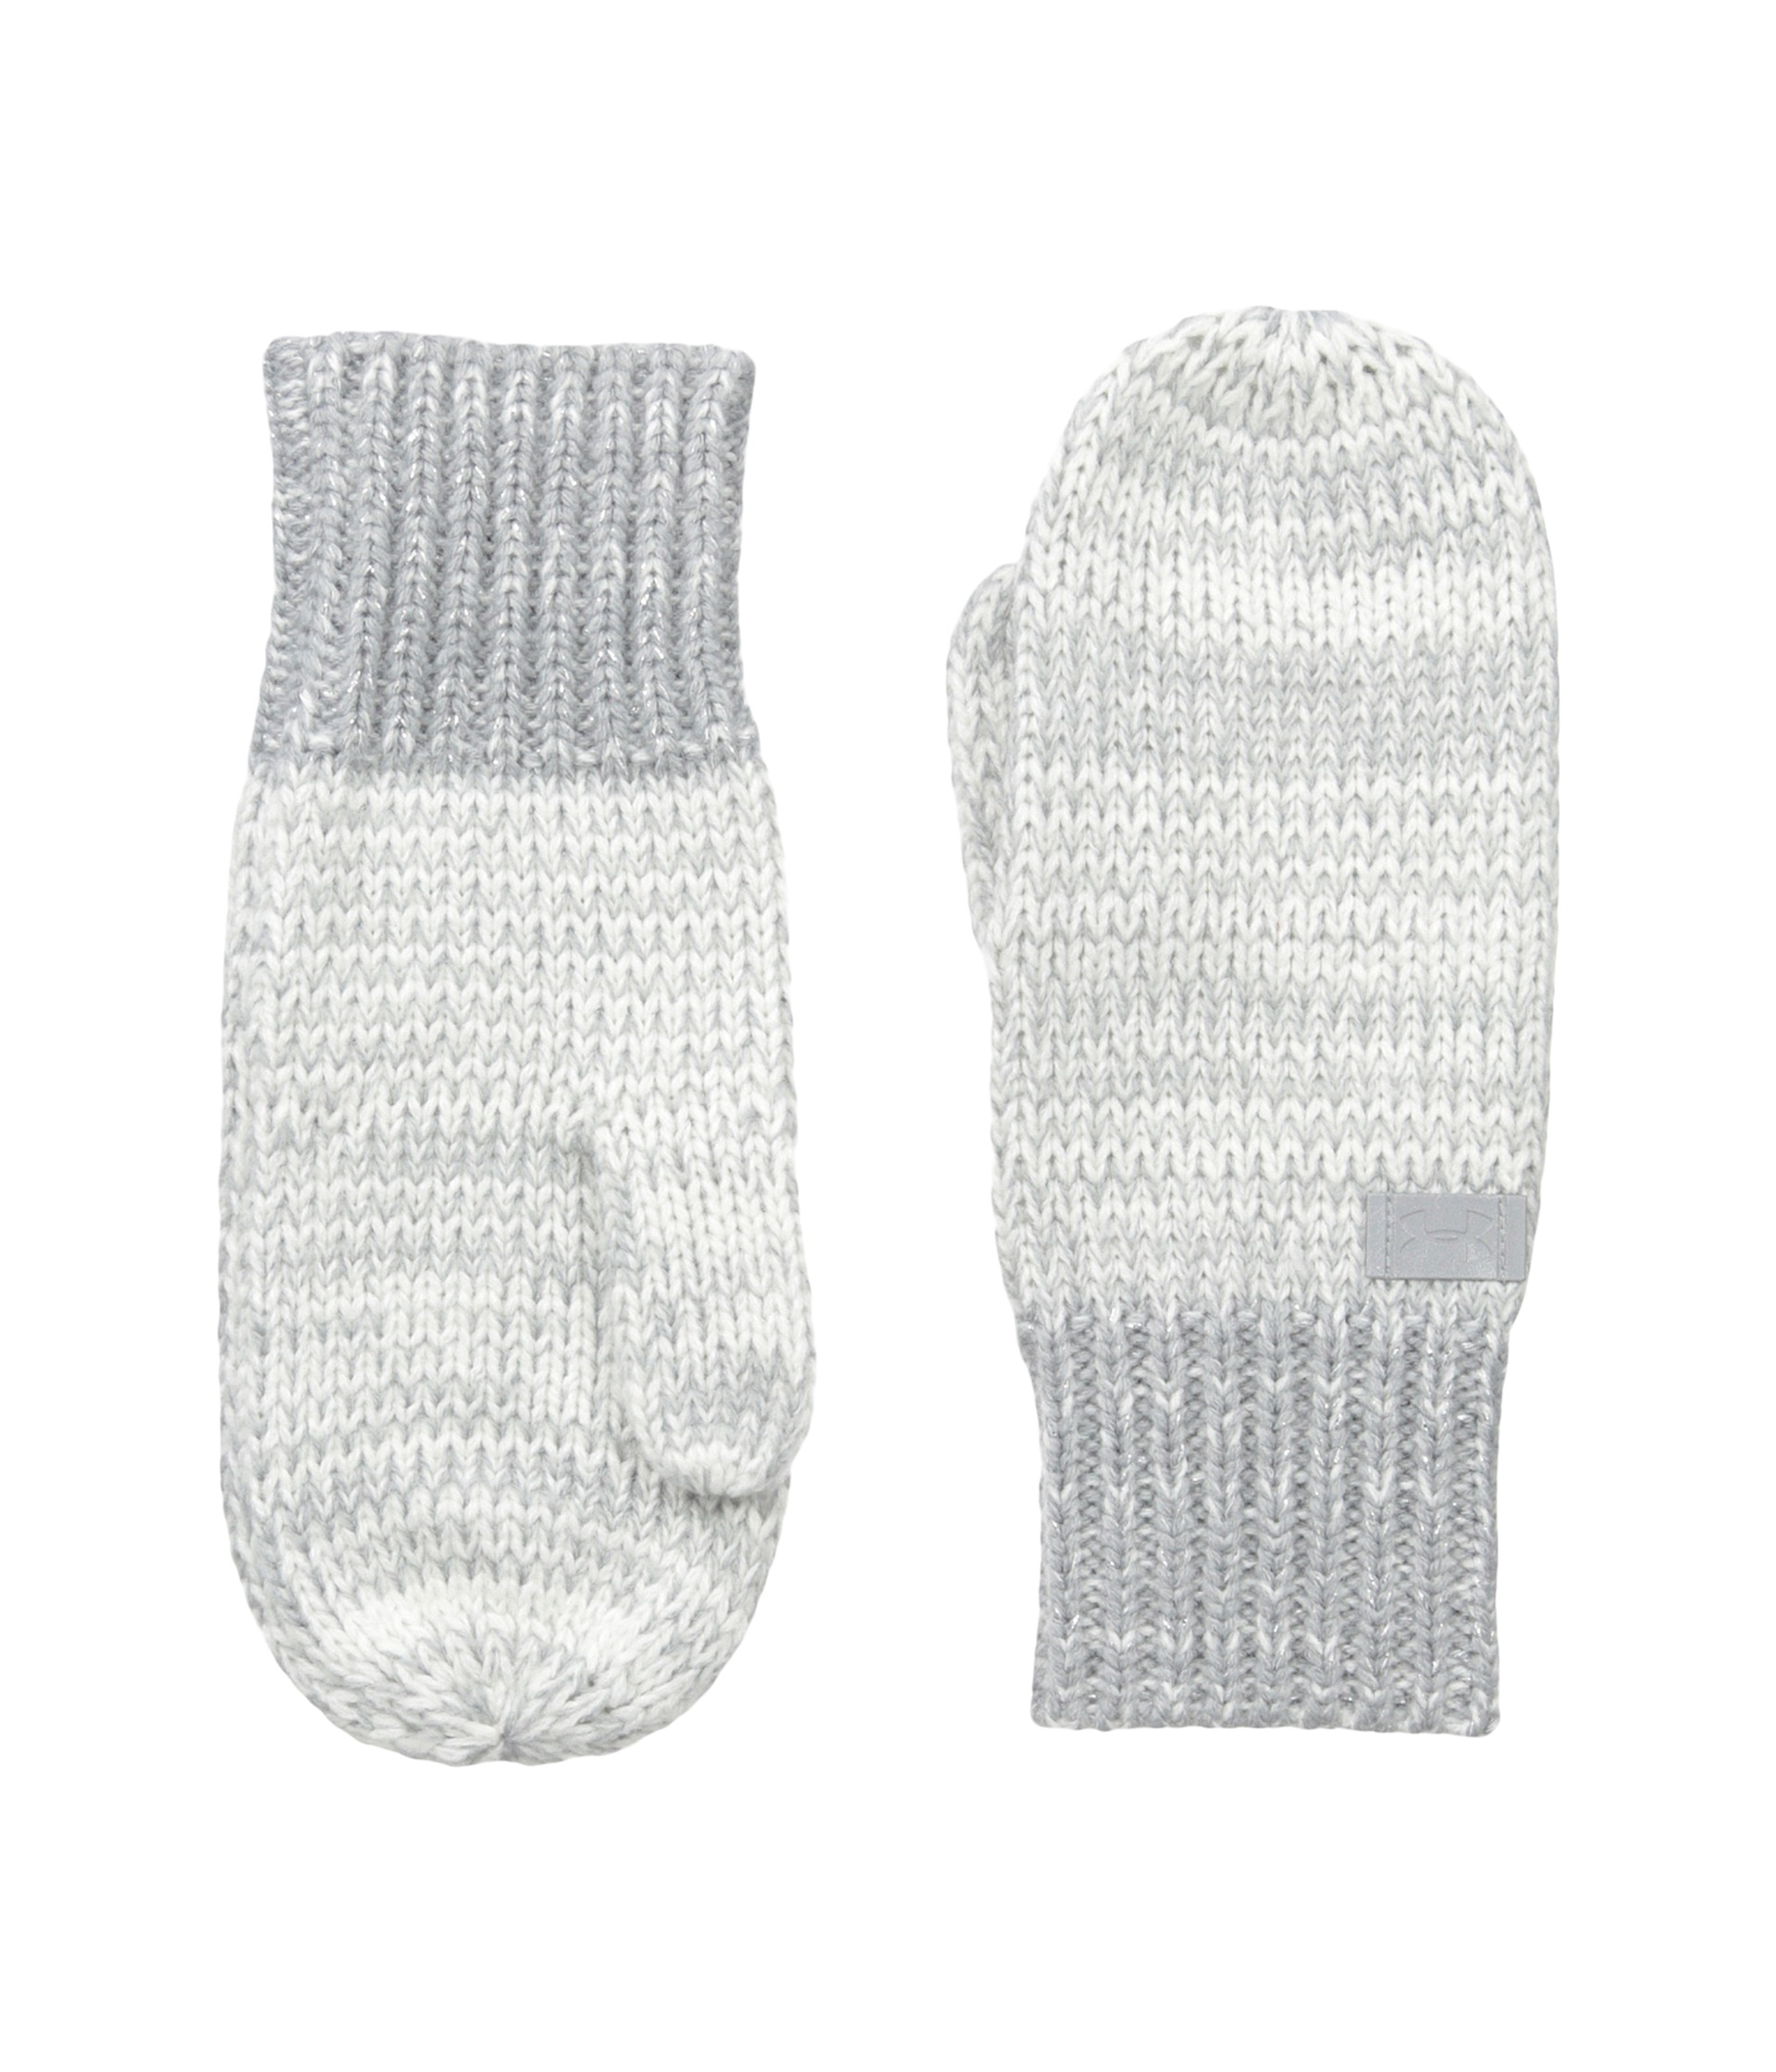 Knitting Machine For Sale Near Me : Under armour knit mittens youth at zappos